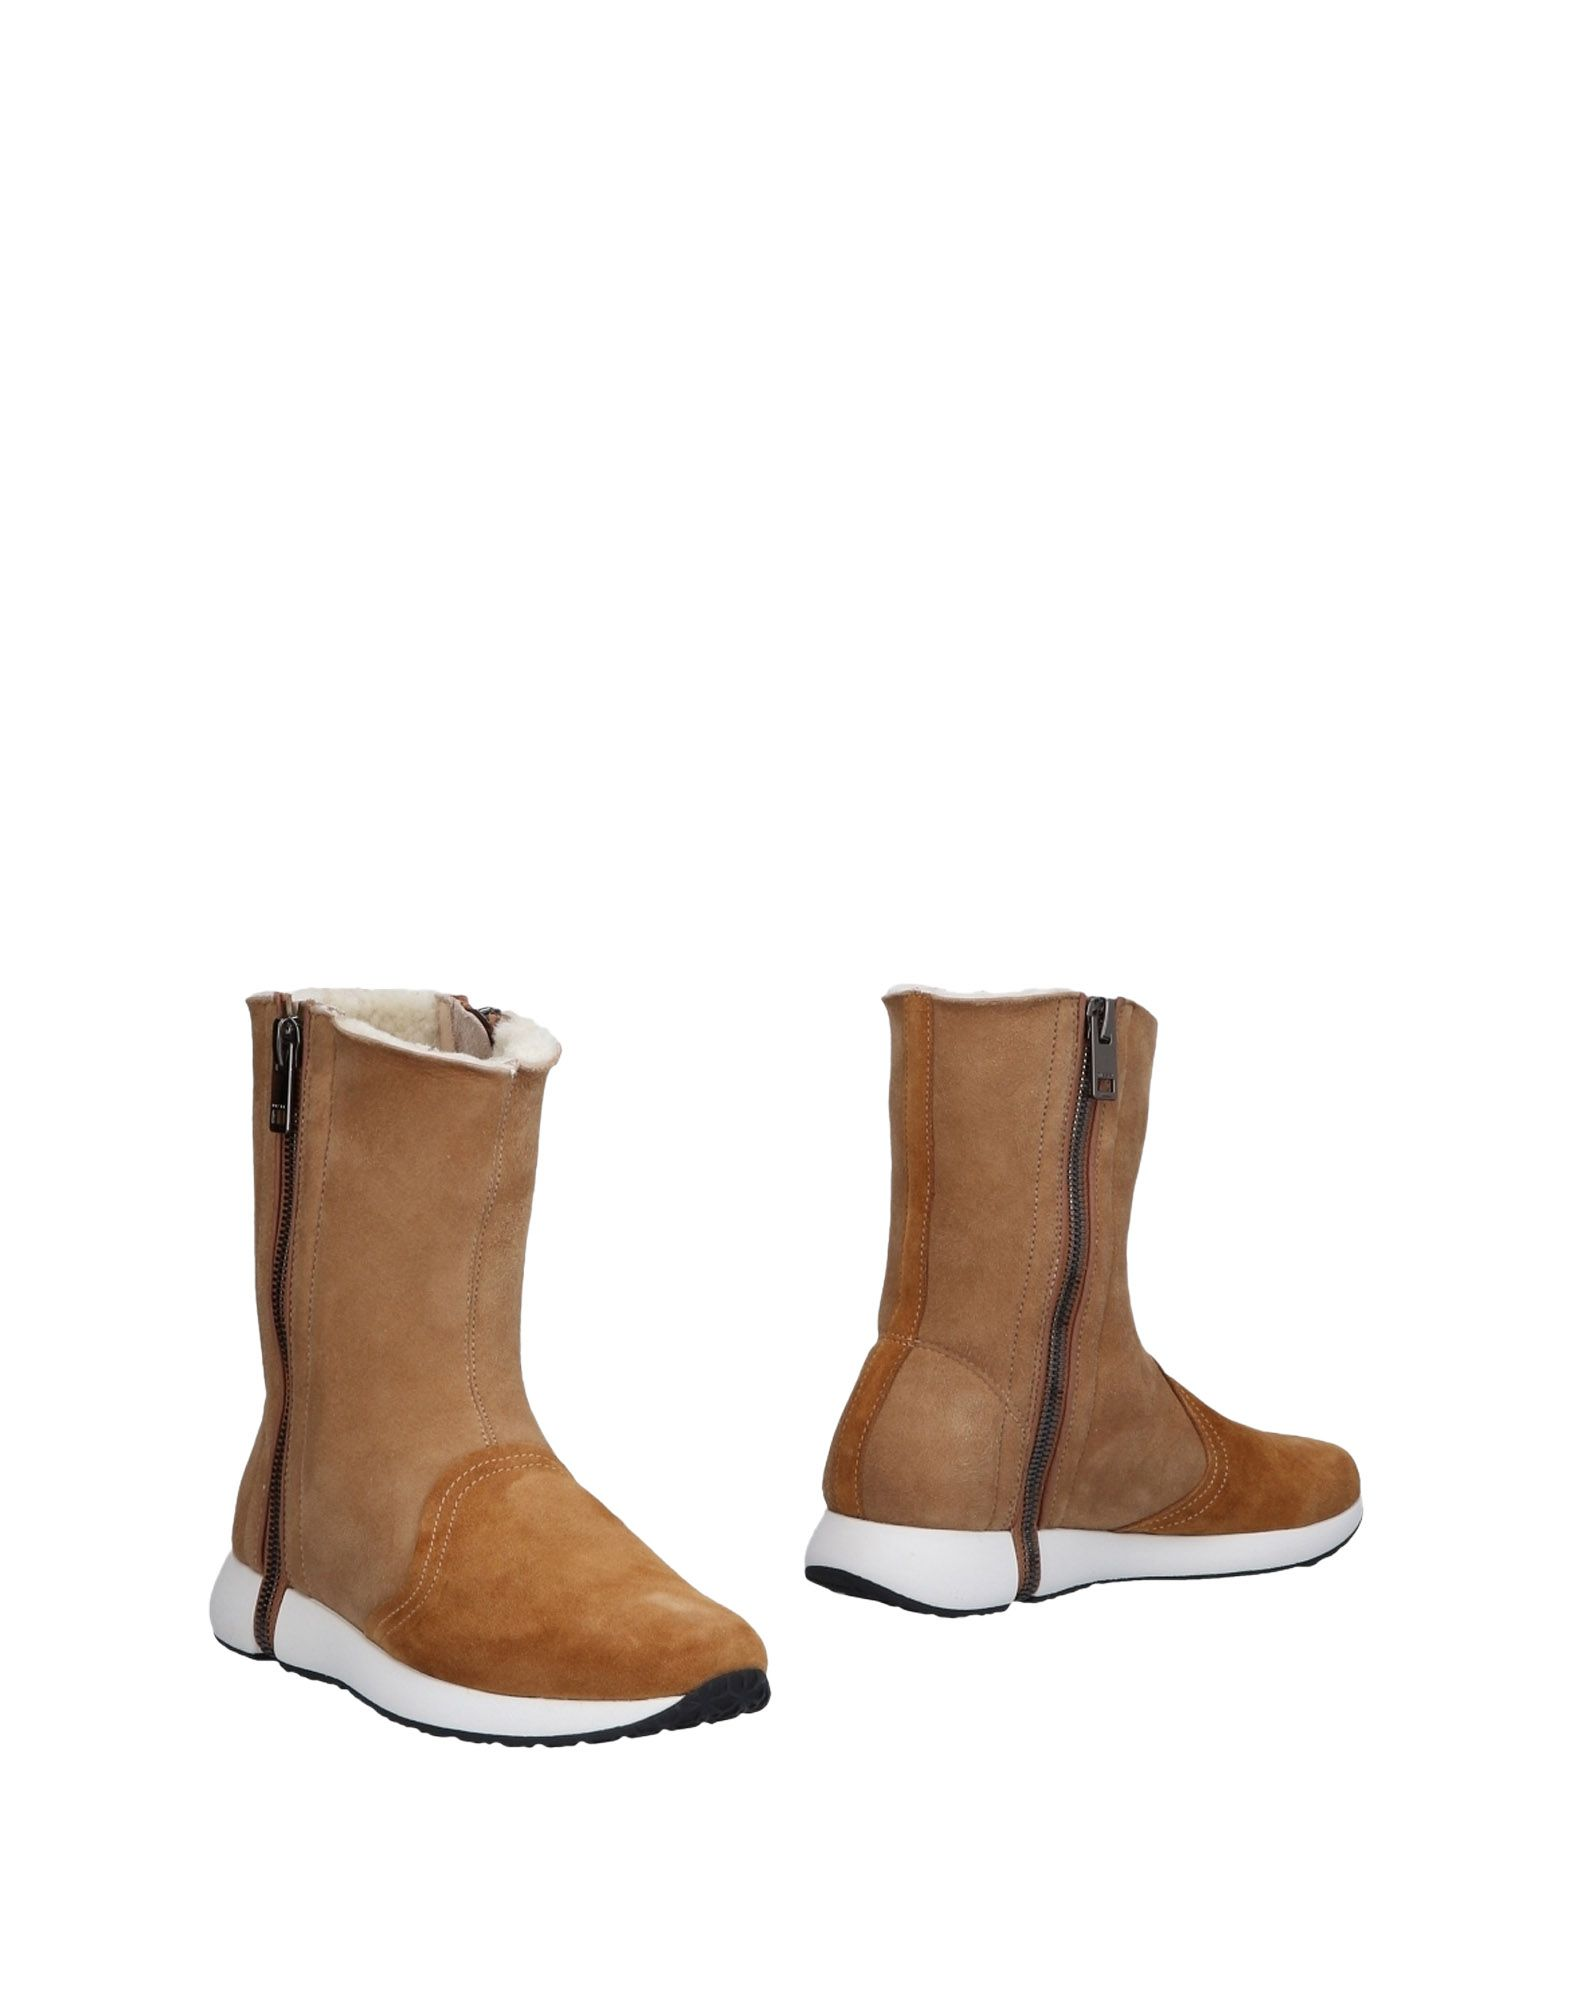 c8ced8fe1bcf72 DIESEL Ankle Boots